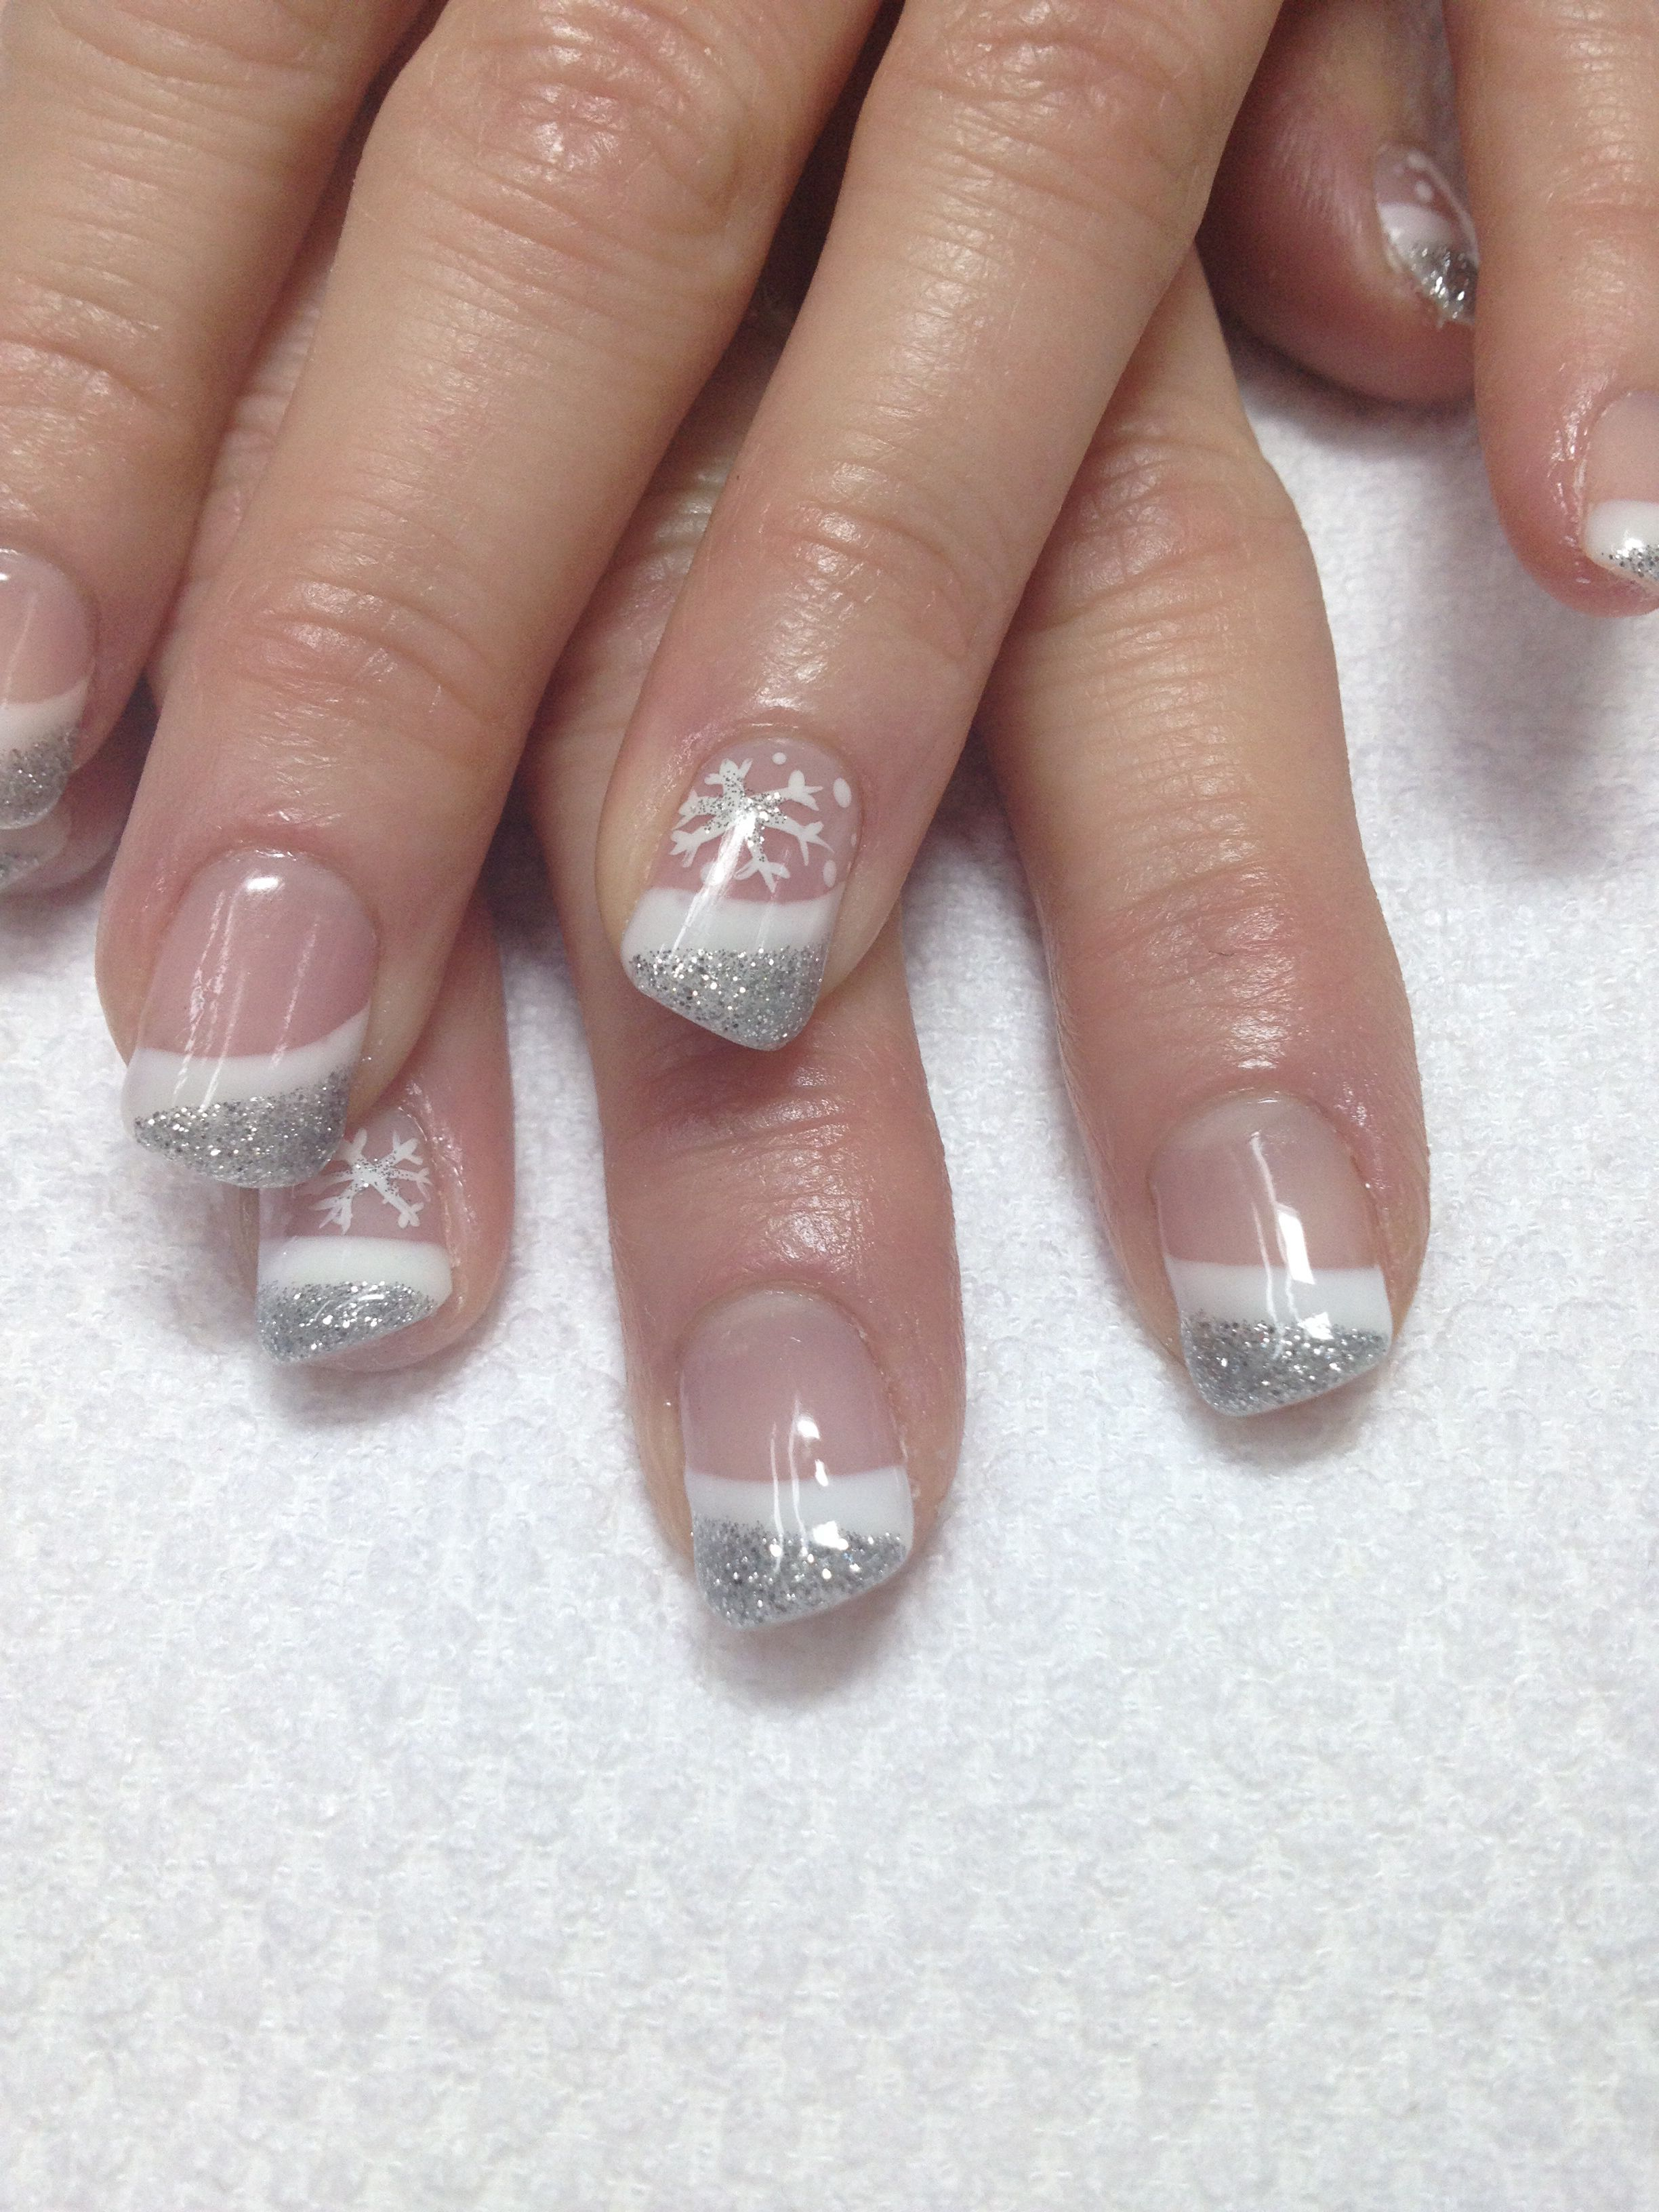 New Years white & silver French gel nails, accented w/ a